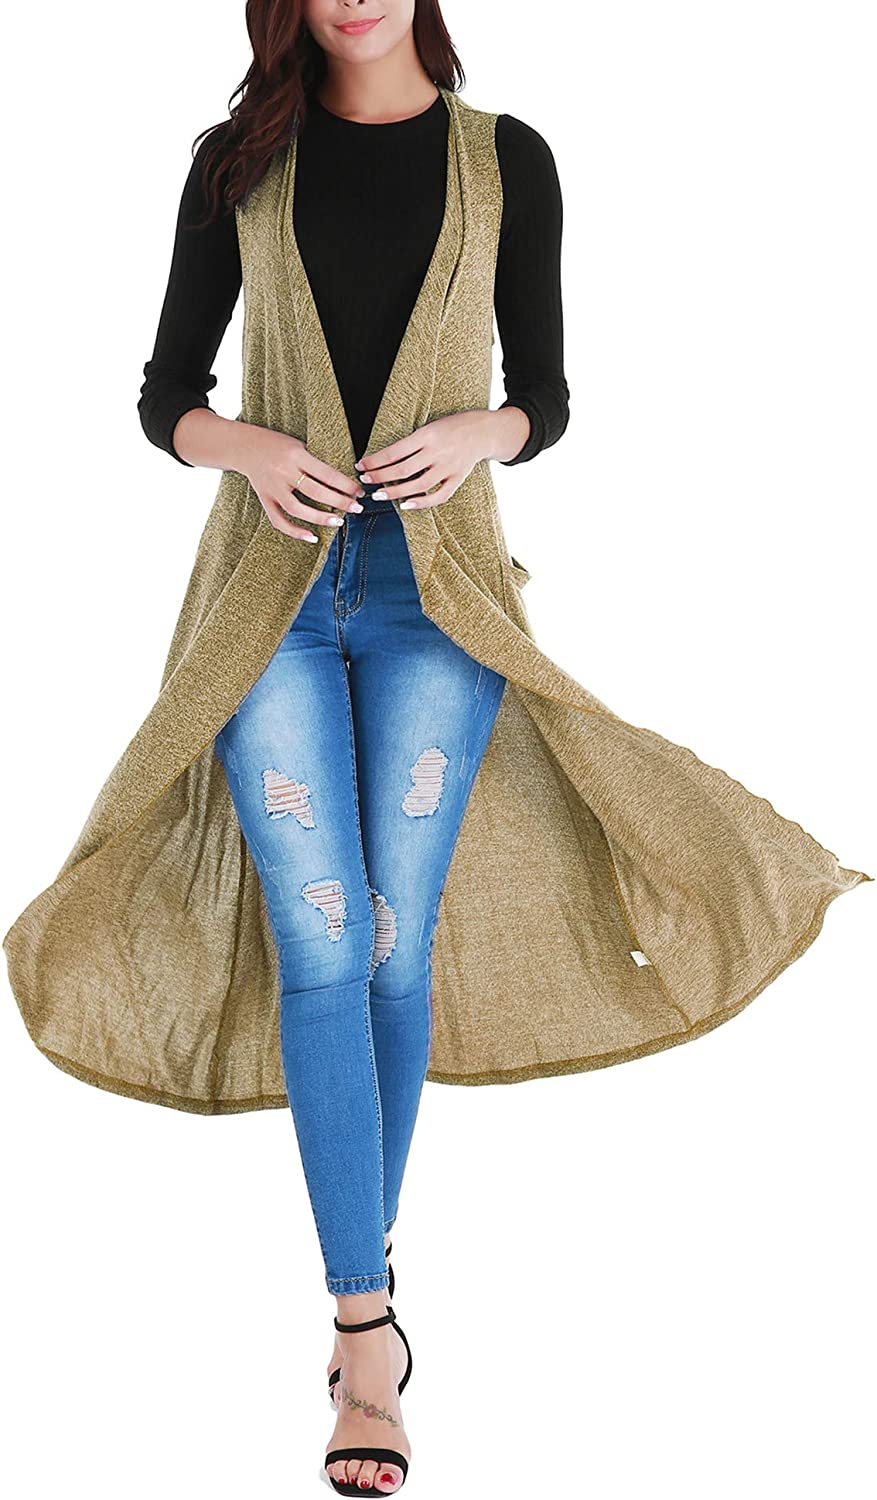 Uniboutique Women's Long Open Front Cardigan Vest with Pockets and Belt